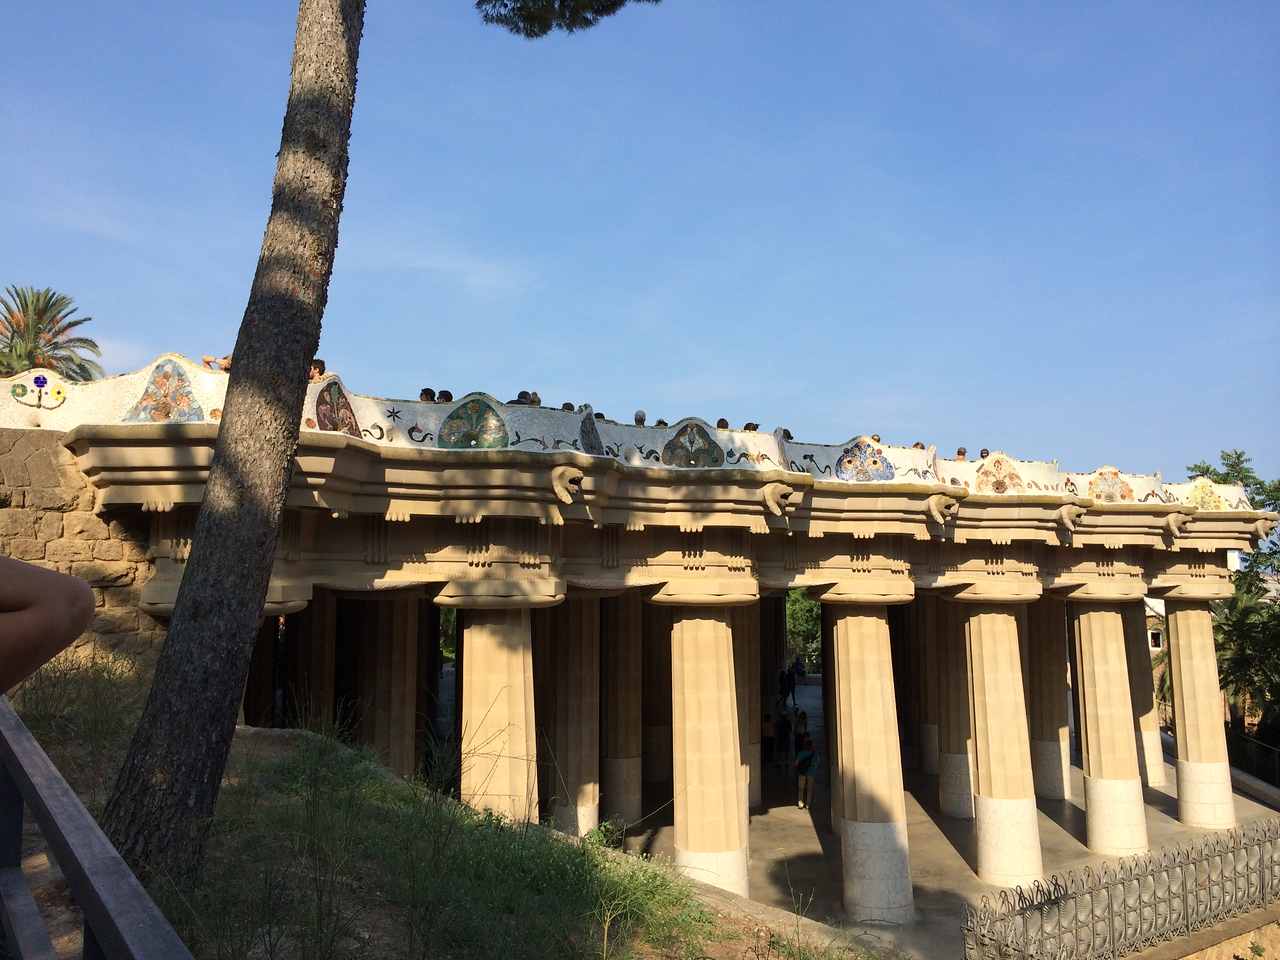 The Doric columns in the marketplace below are hollow and serve as drain pipes for a reservoir to provide water for the fountains on the park grounds. Above the columns is a terrace with undulating tiled mosaic benches which were ergonomically designed.